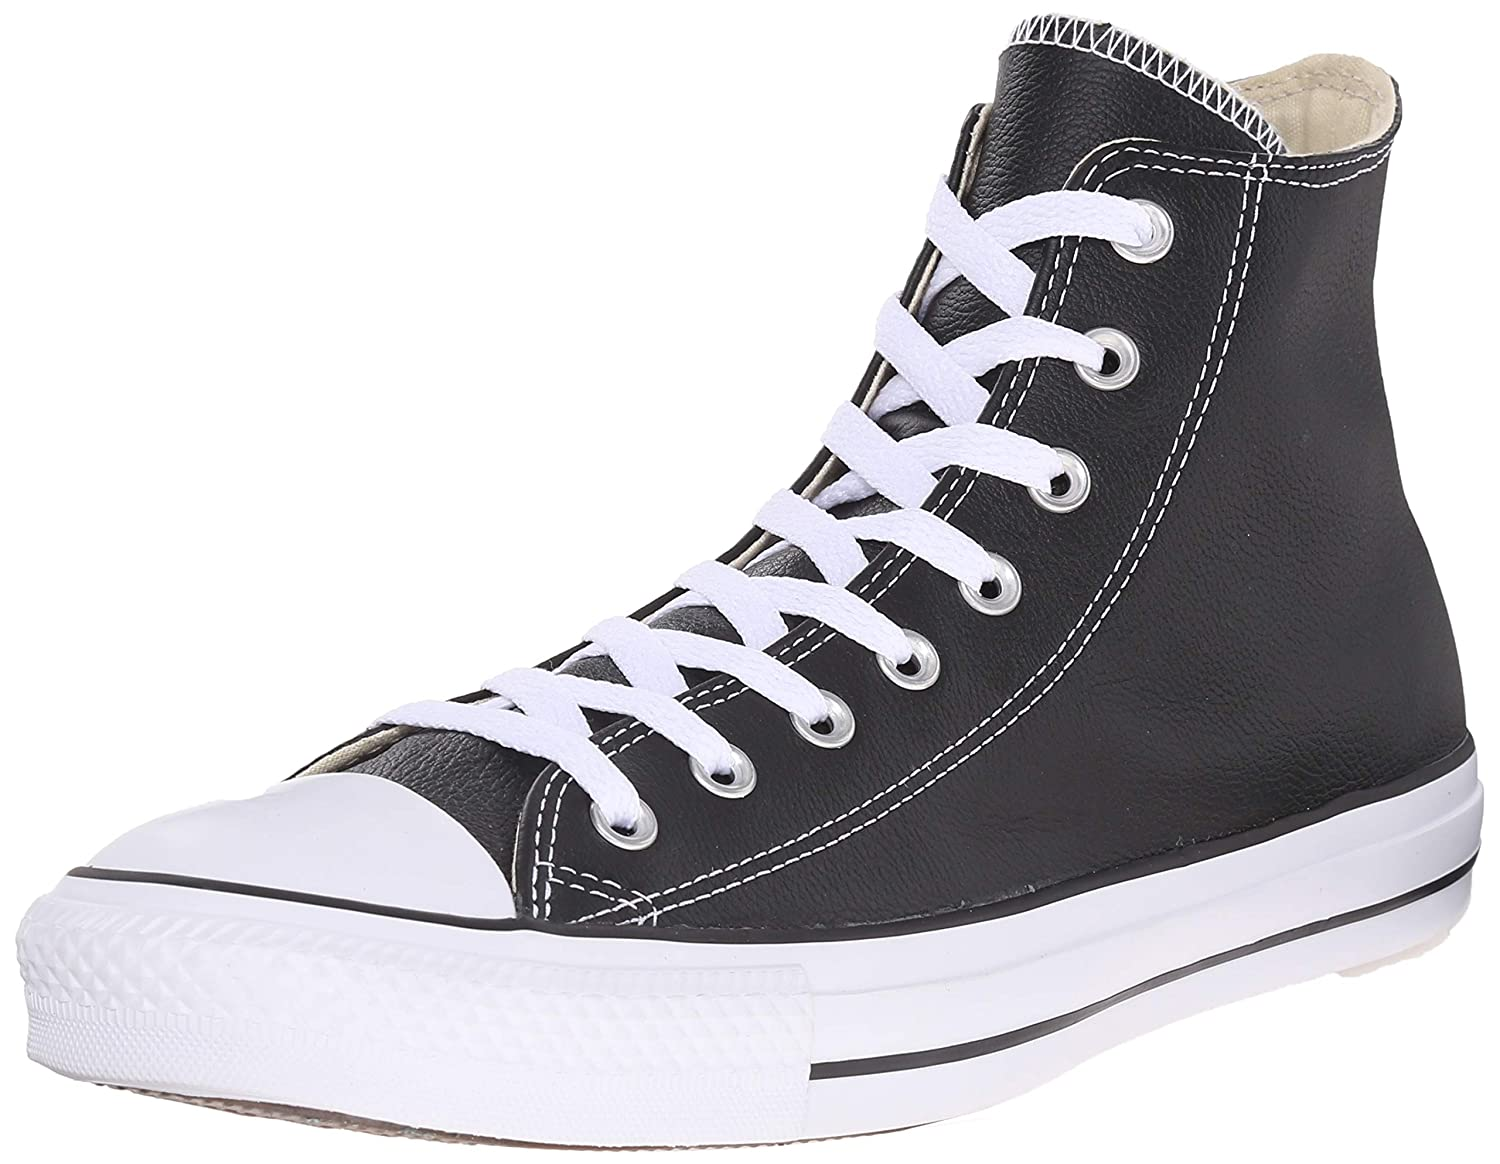 6bfe230be02f1 Converse Unisex-Adult Chuck Taylor All Star Adulte Seasonal Leather HI  Trainers